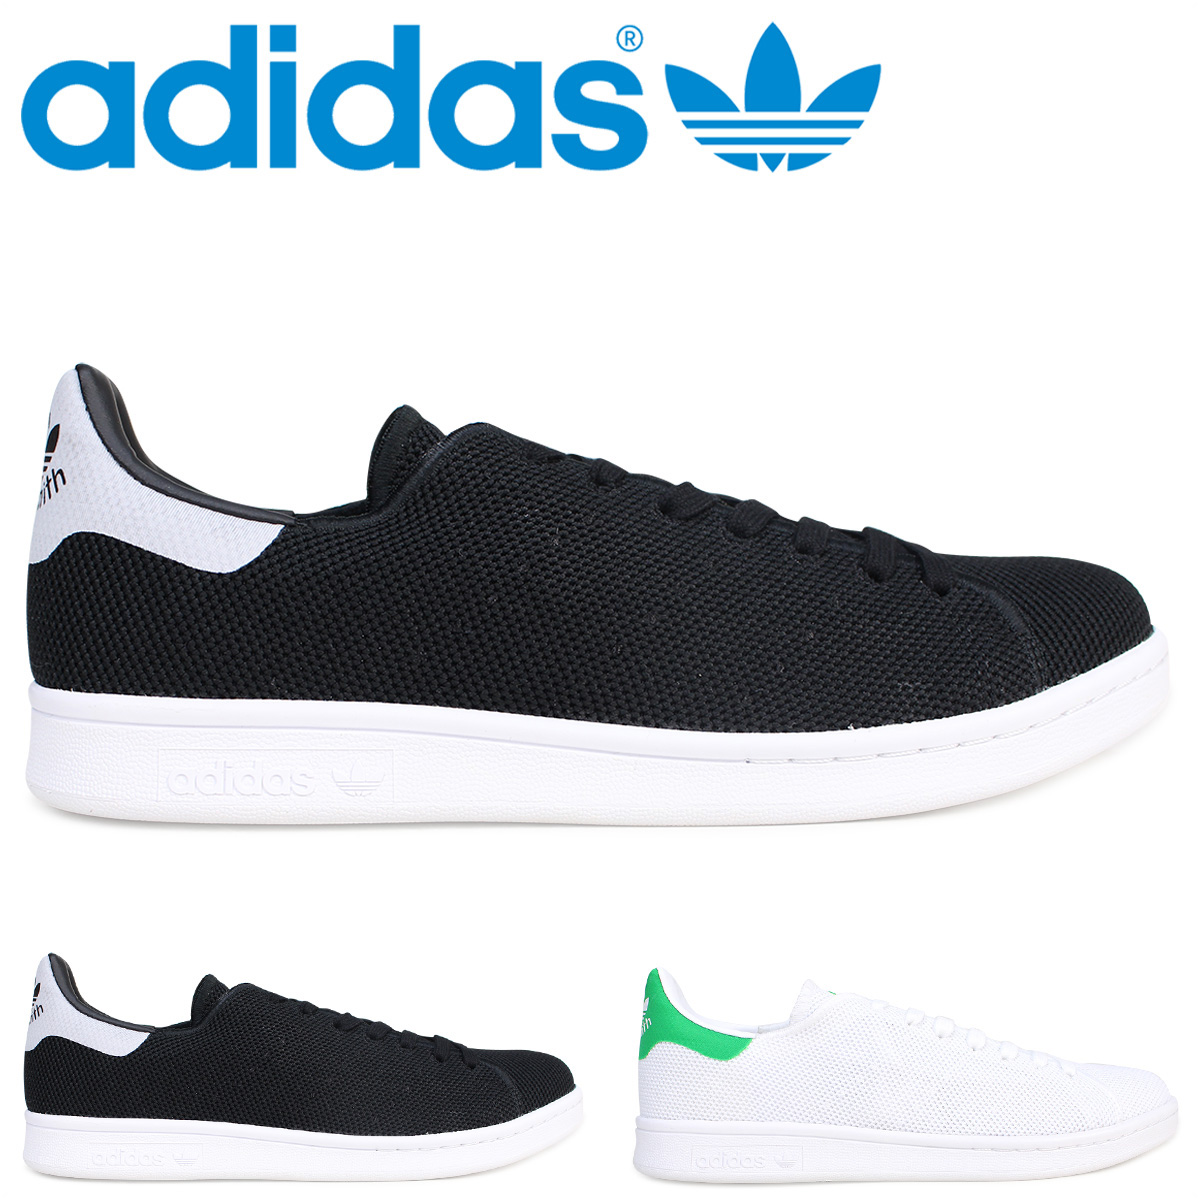 size 40 6a062 e8d03 adidas Stan Smith Adidas originals sneakers STAN SMITH men BB0065 BB0066  shoes white [5/9 Shinnyu load] [175]